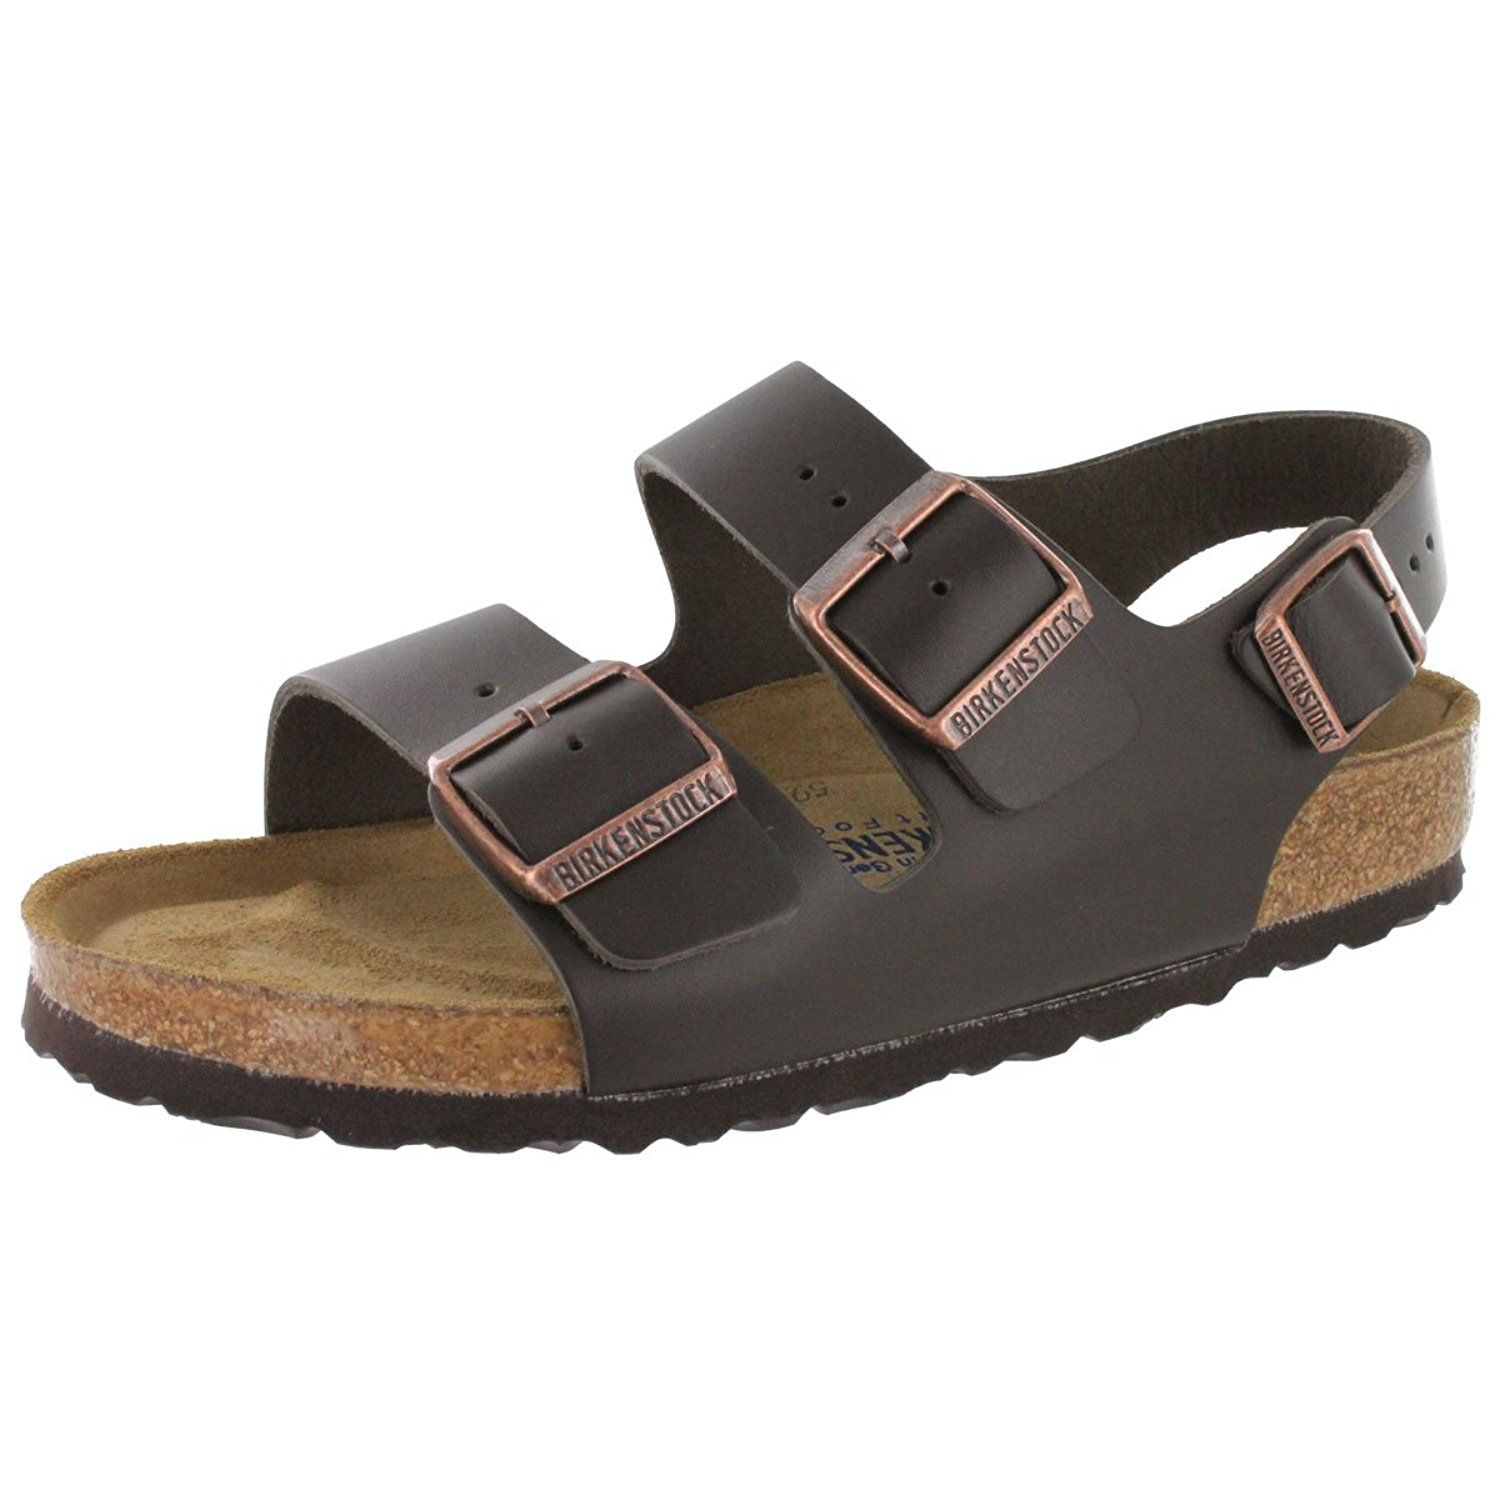 e3afed6e7583 Birkenstock Women s Milano Backstrap Cork Footbed Sandal    Awesome outdoor  product. Click the image   Birkenstock sandals